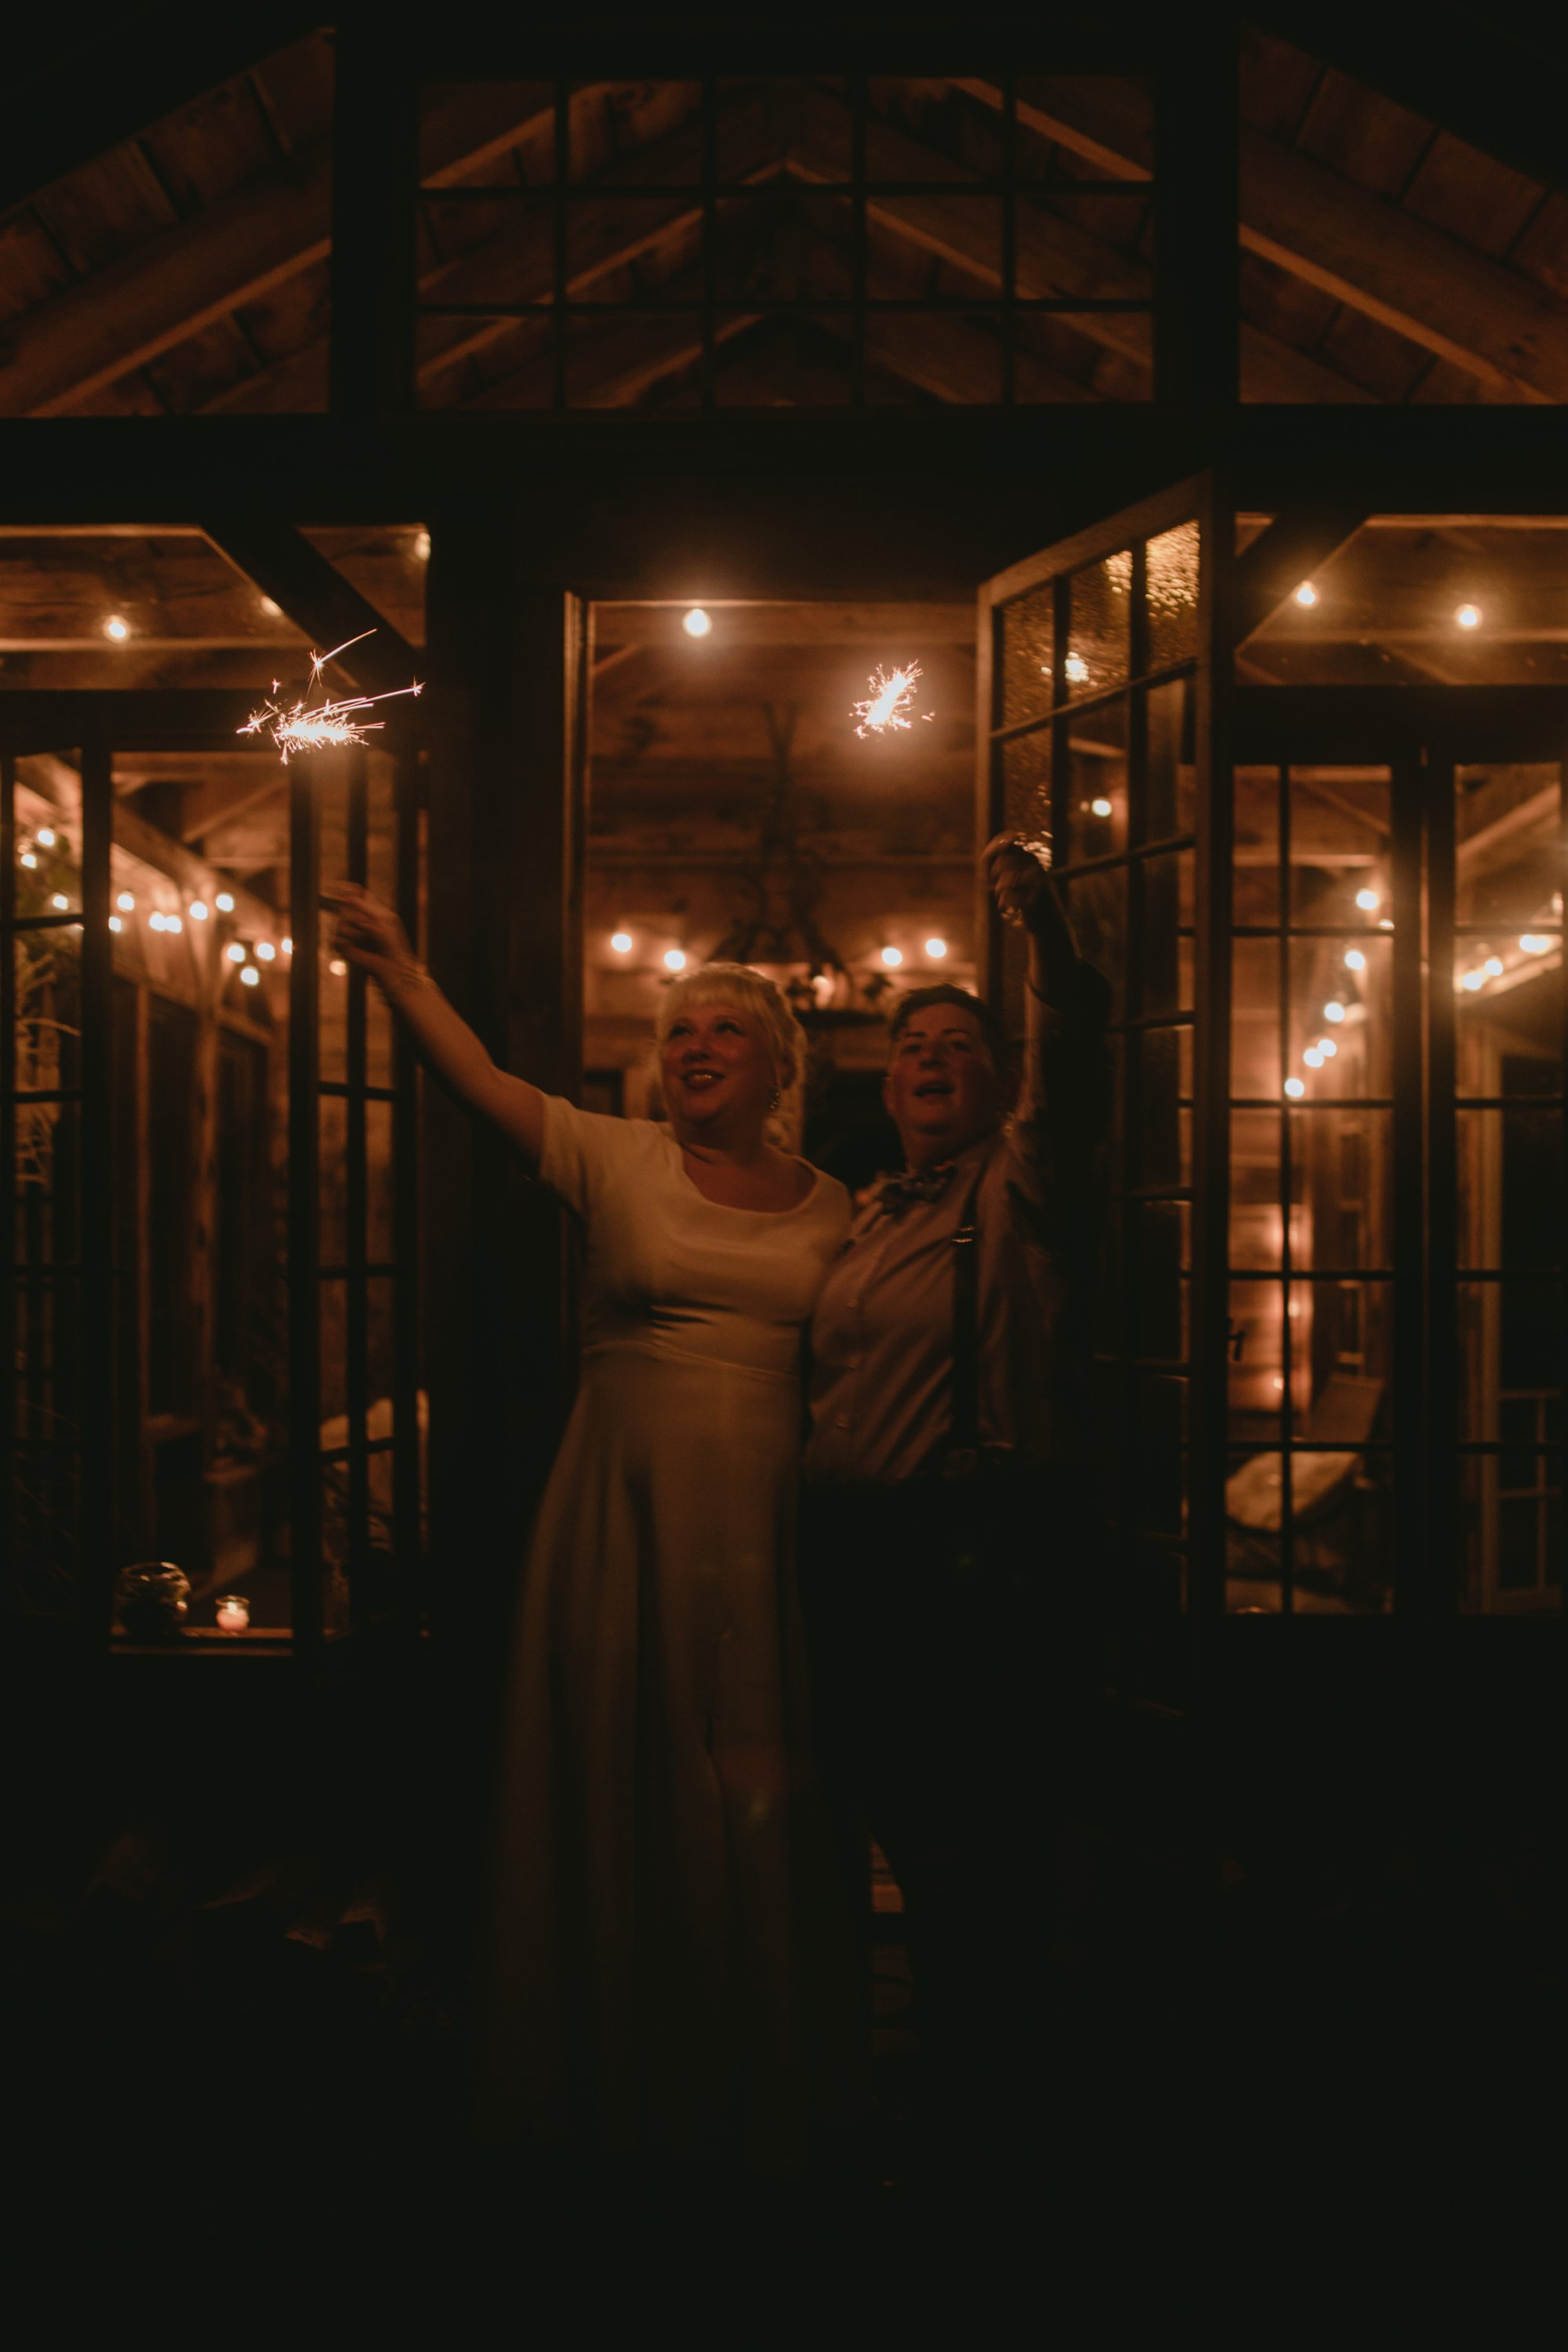 October Jewish lesbian wedding at Foxfire Mountain House in Upstate New York. End of night sparklers